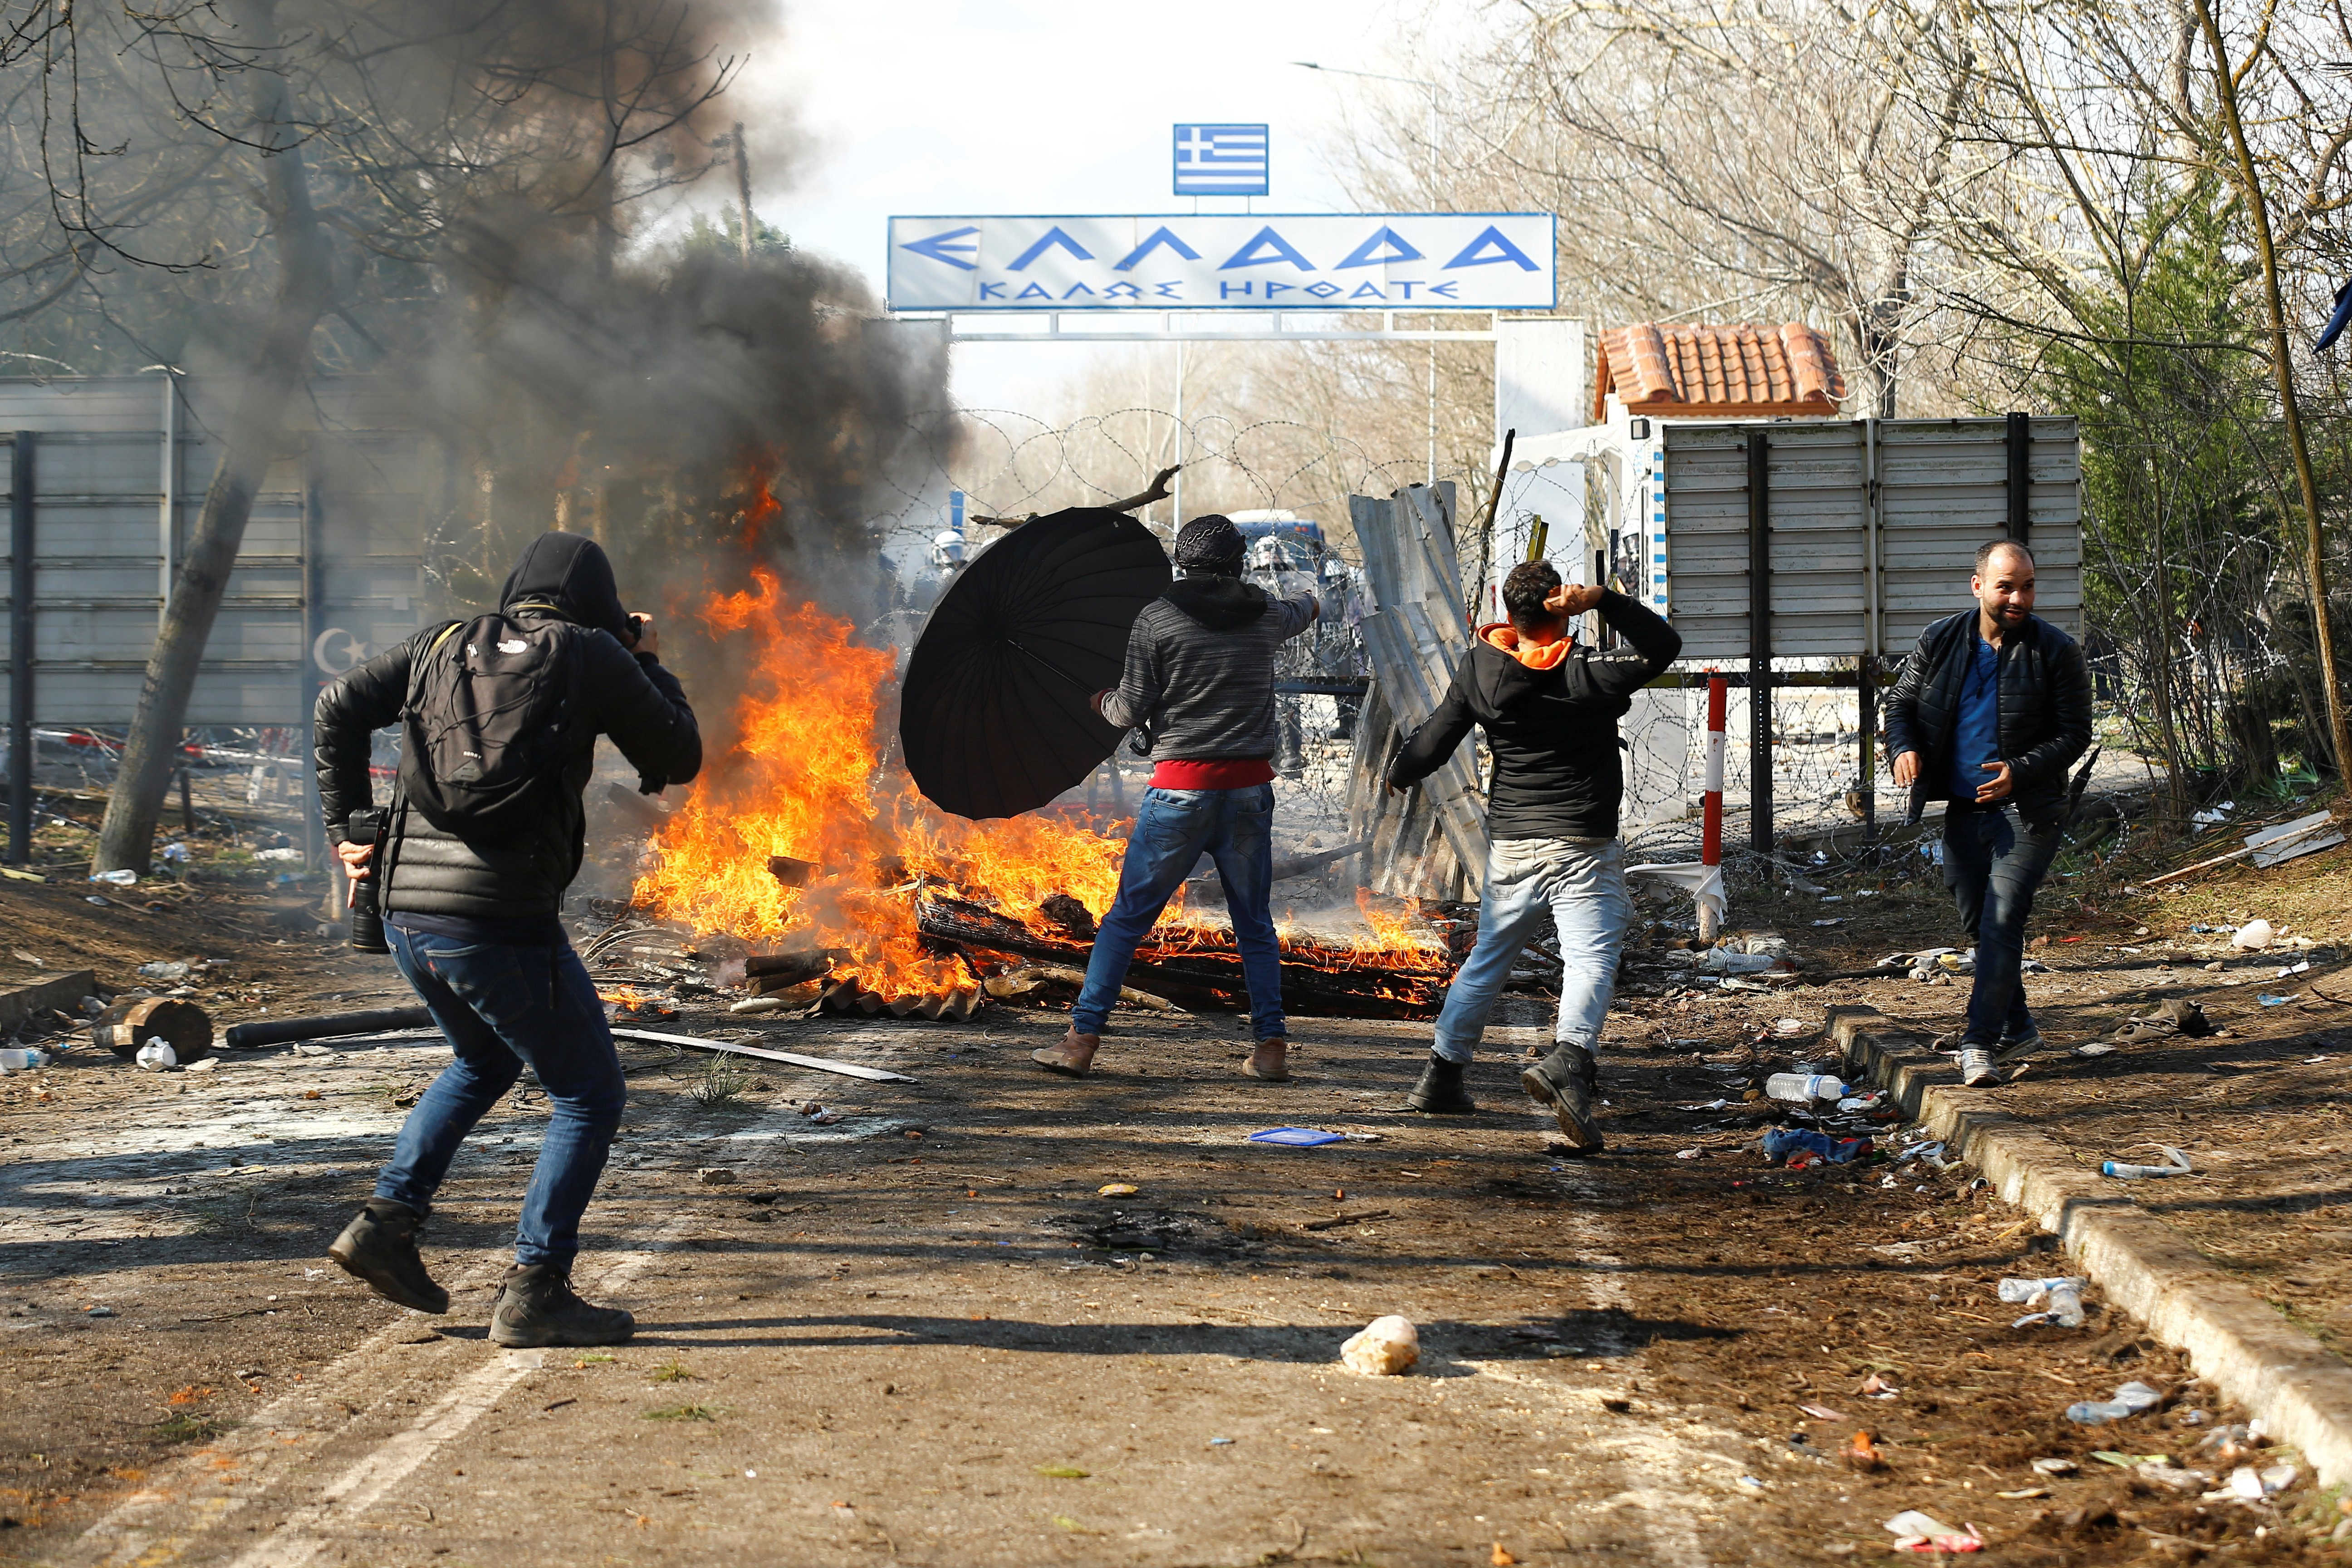 Migrants throw objects during clashes with Greek police, at the Turkey's Pazarkule border crossing with Greece's Kastanies, in Edirne, Feb. 29, 2020. REUTERS